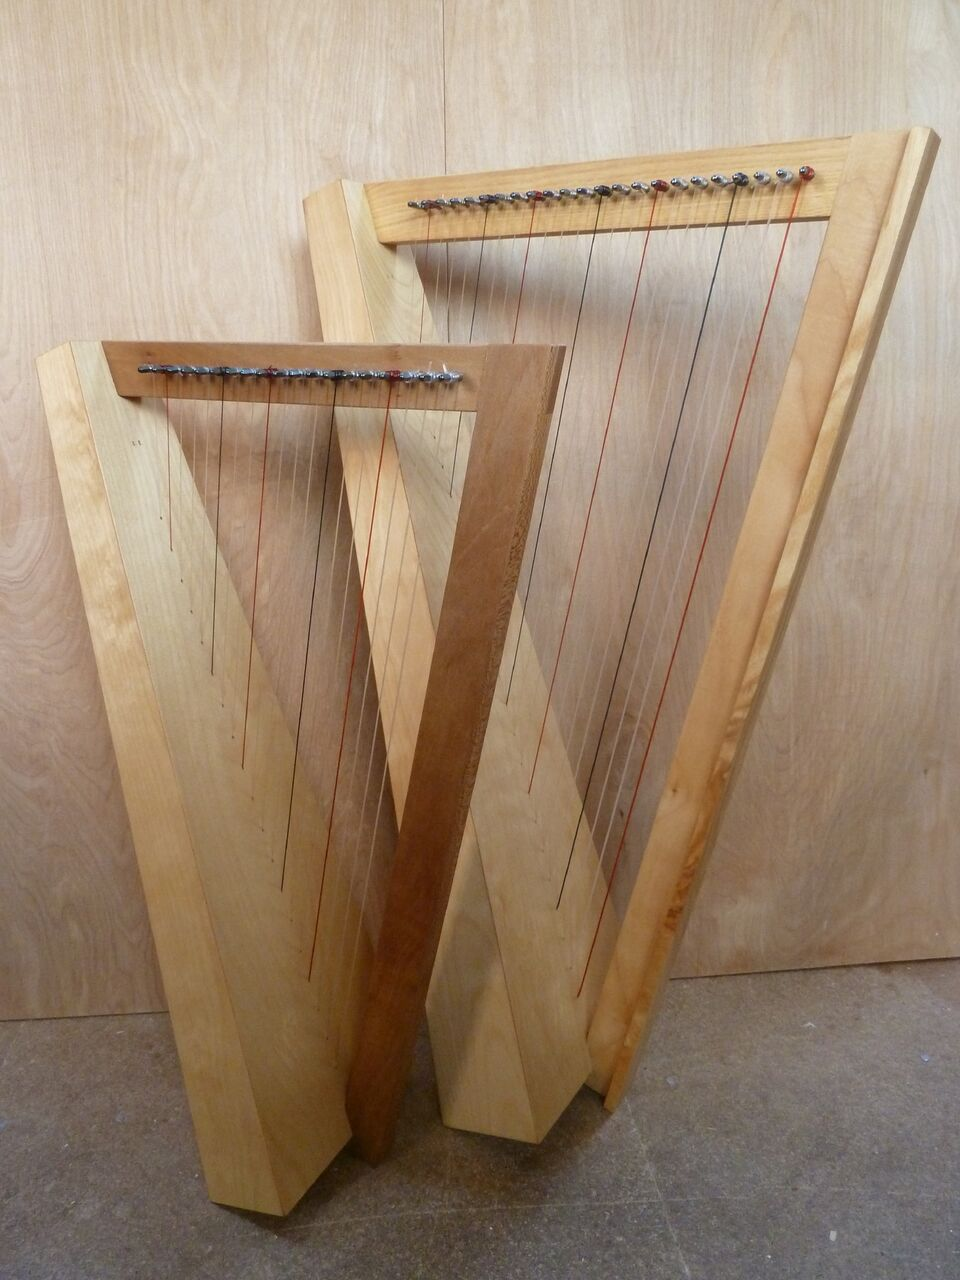 19 and 23 string lap harps._preview.jpeg